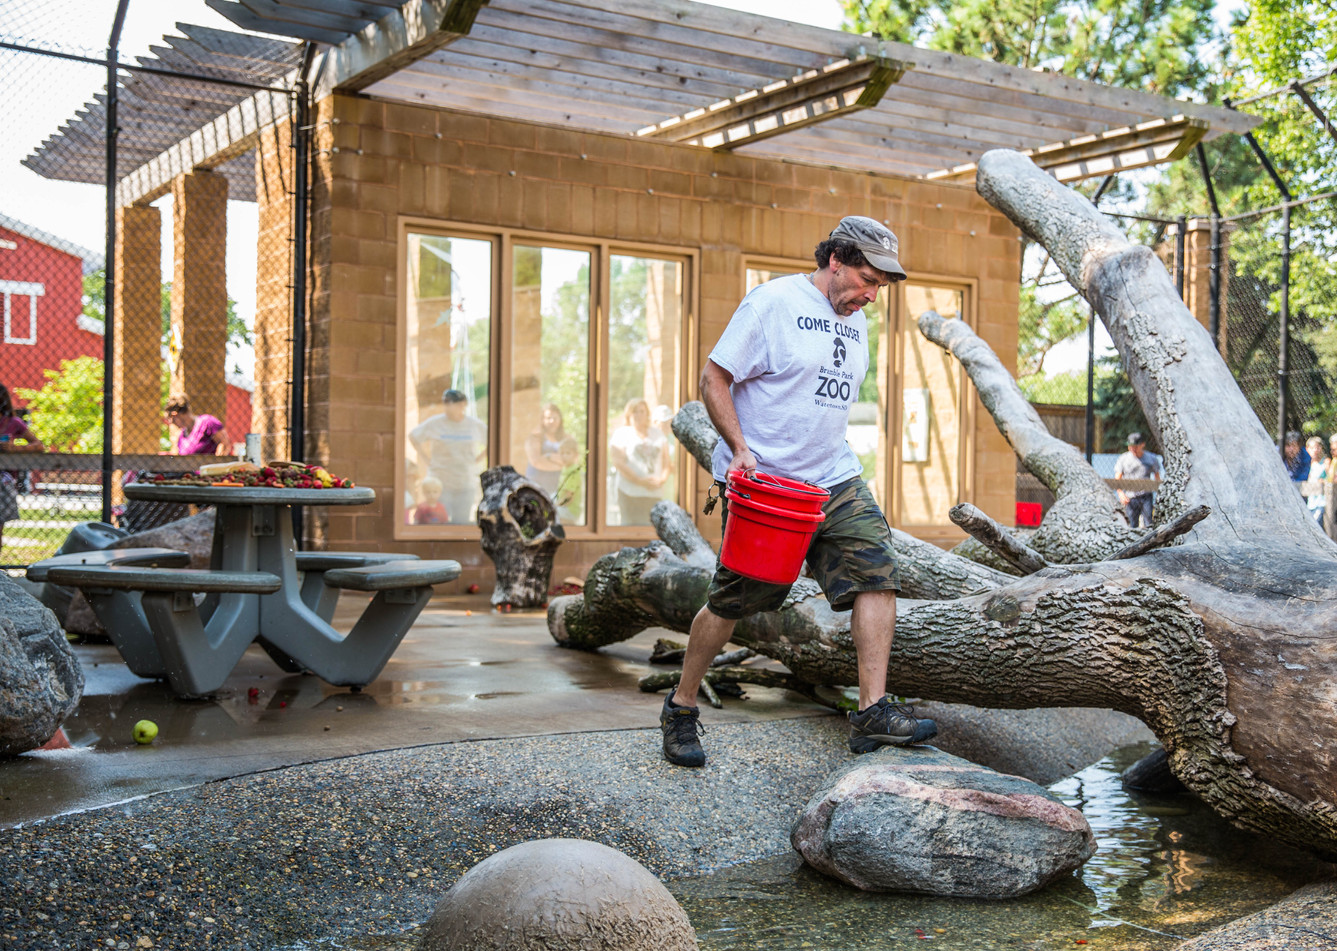 Zookeeper John Gilman sets out treats in the bear enclosure for the 11 a.m. feeding demonstration Wednesday morning, Aug. 2 at Bramble Park Zoo. ©2017 Grace Ramey